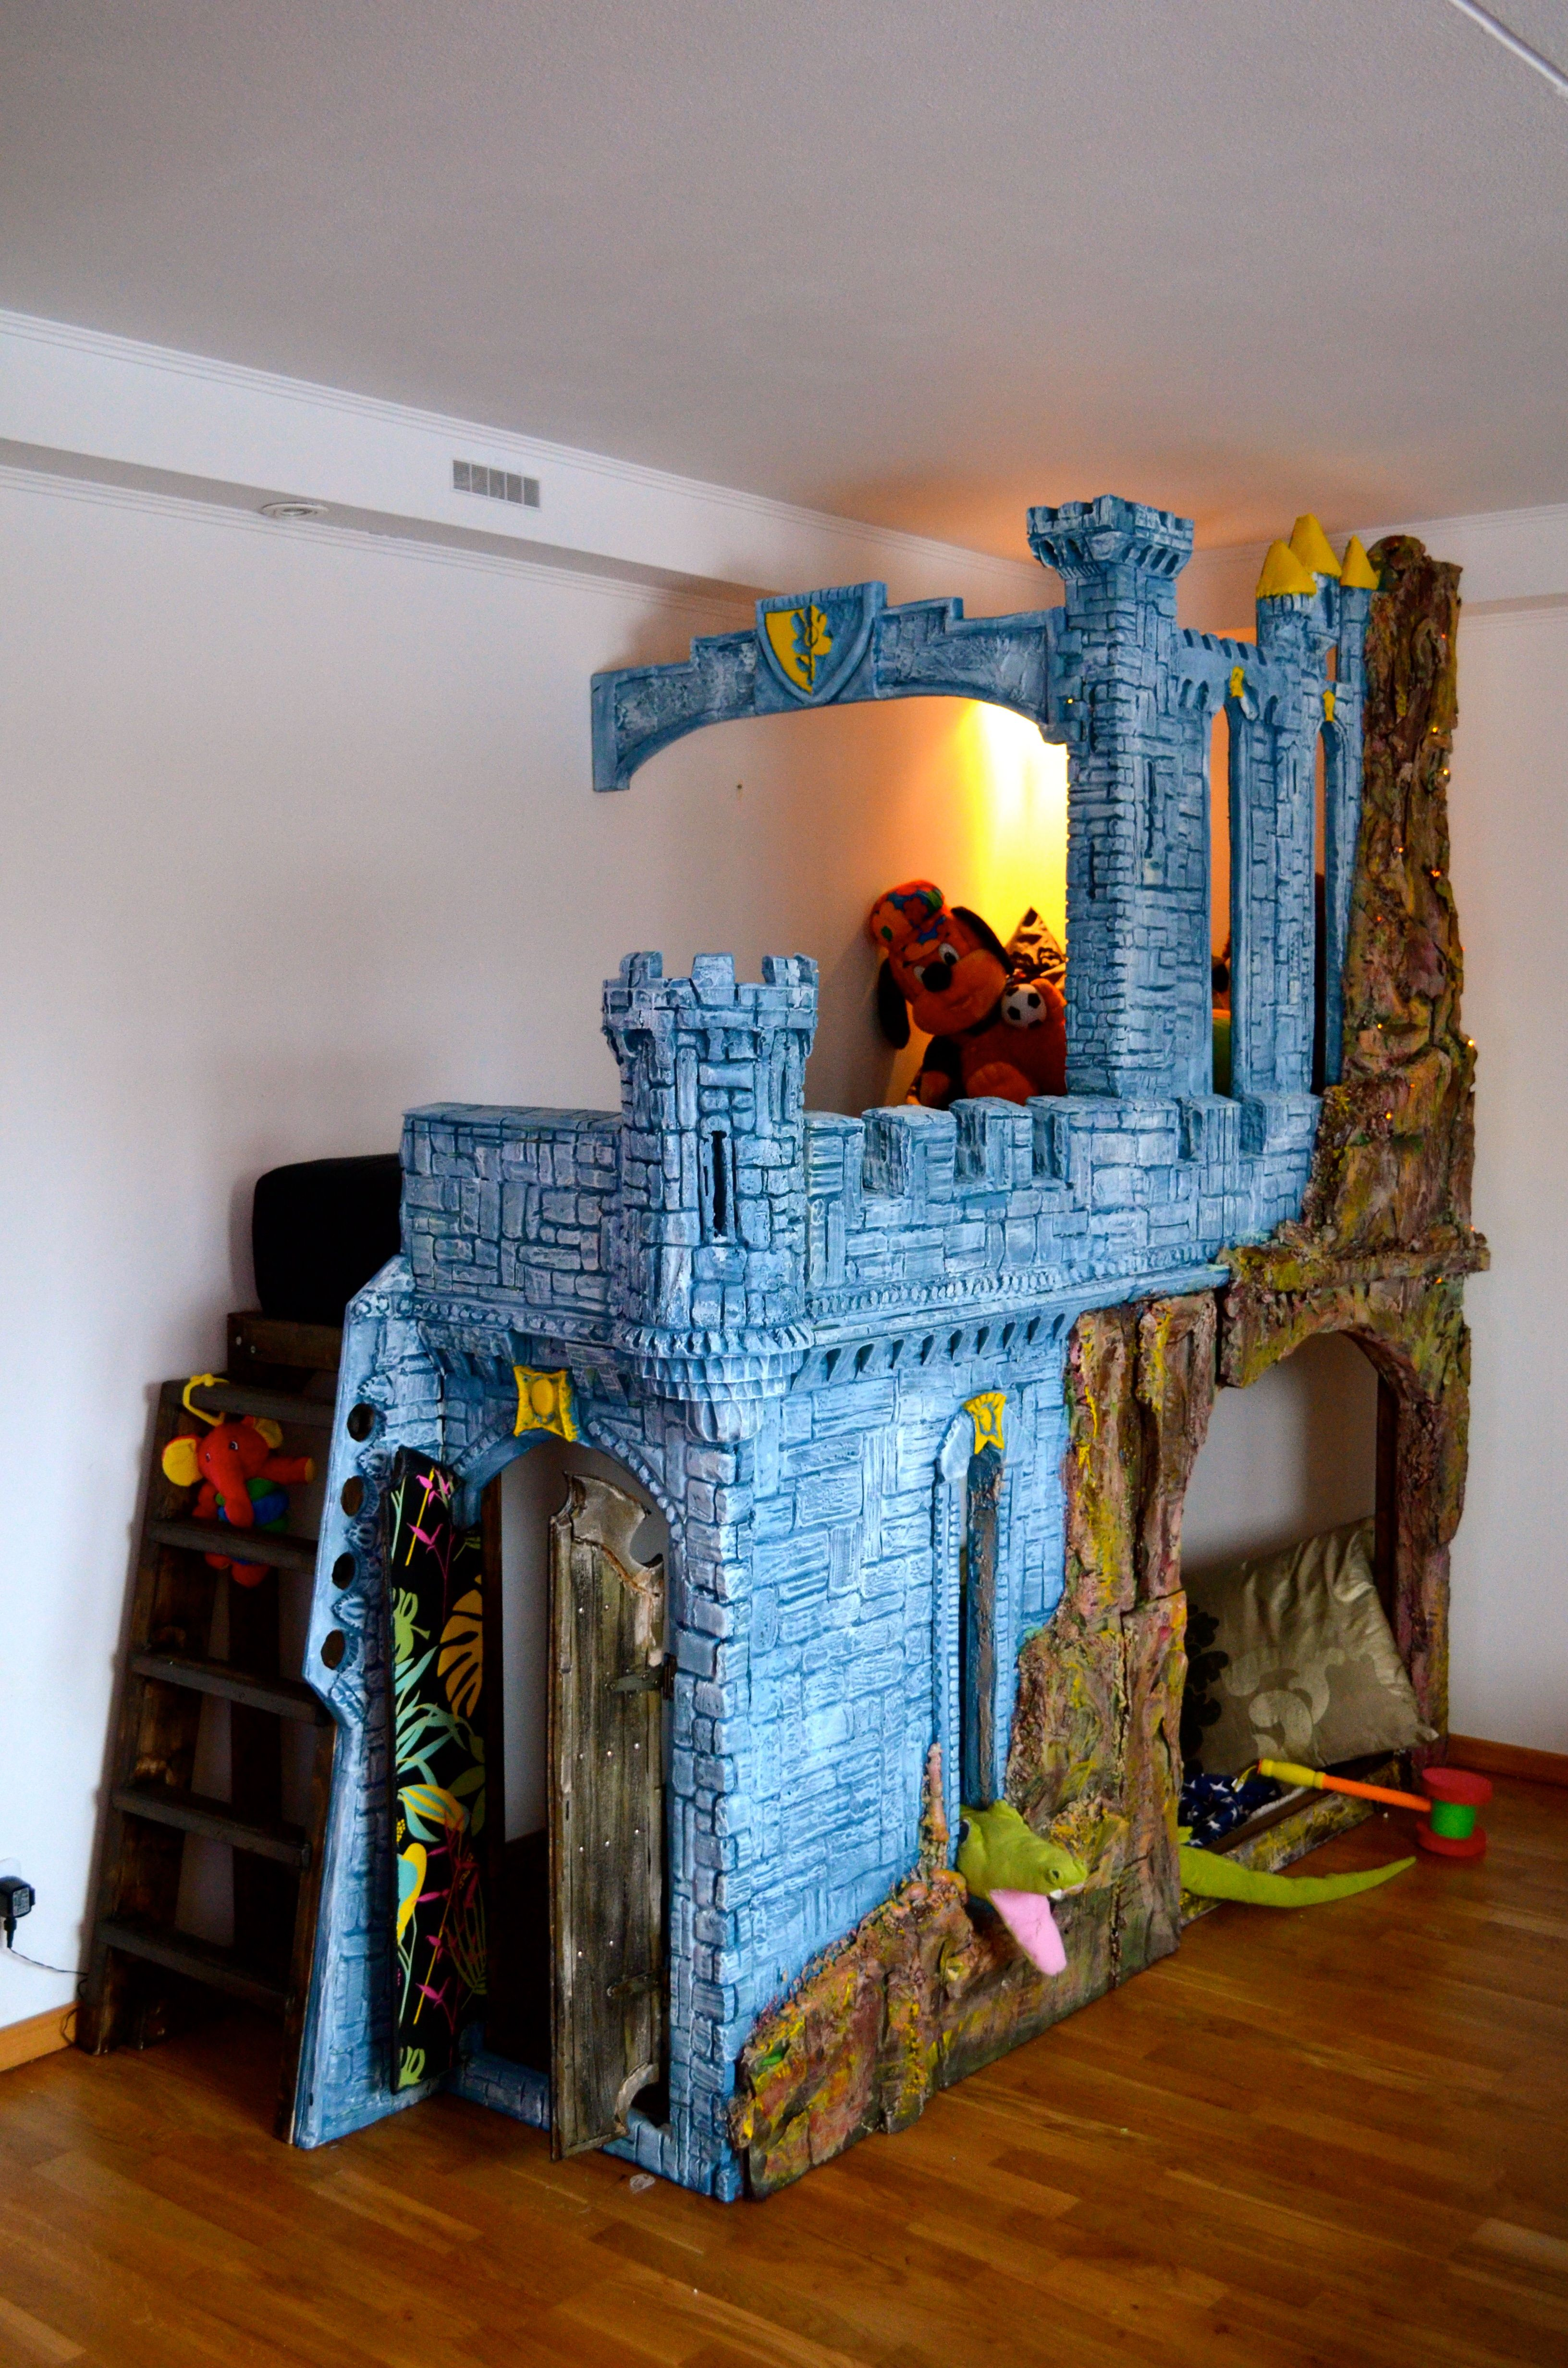 Gothic Castle Kids Play Space Bed Bunk Bed Family Bed All Handcrafted Diy Sculptured Extruded Polystyrene